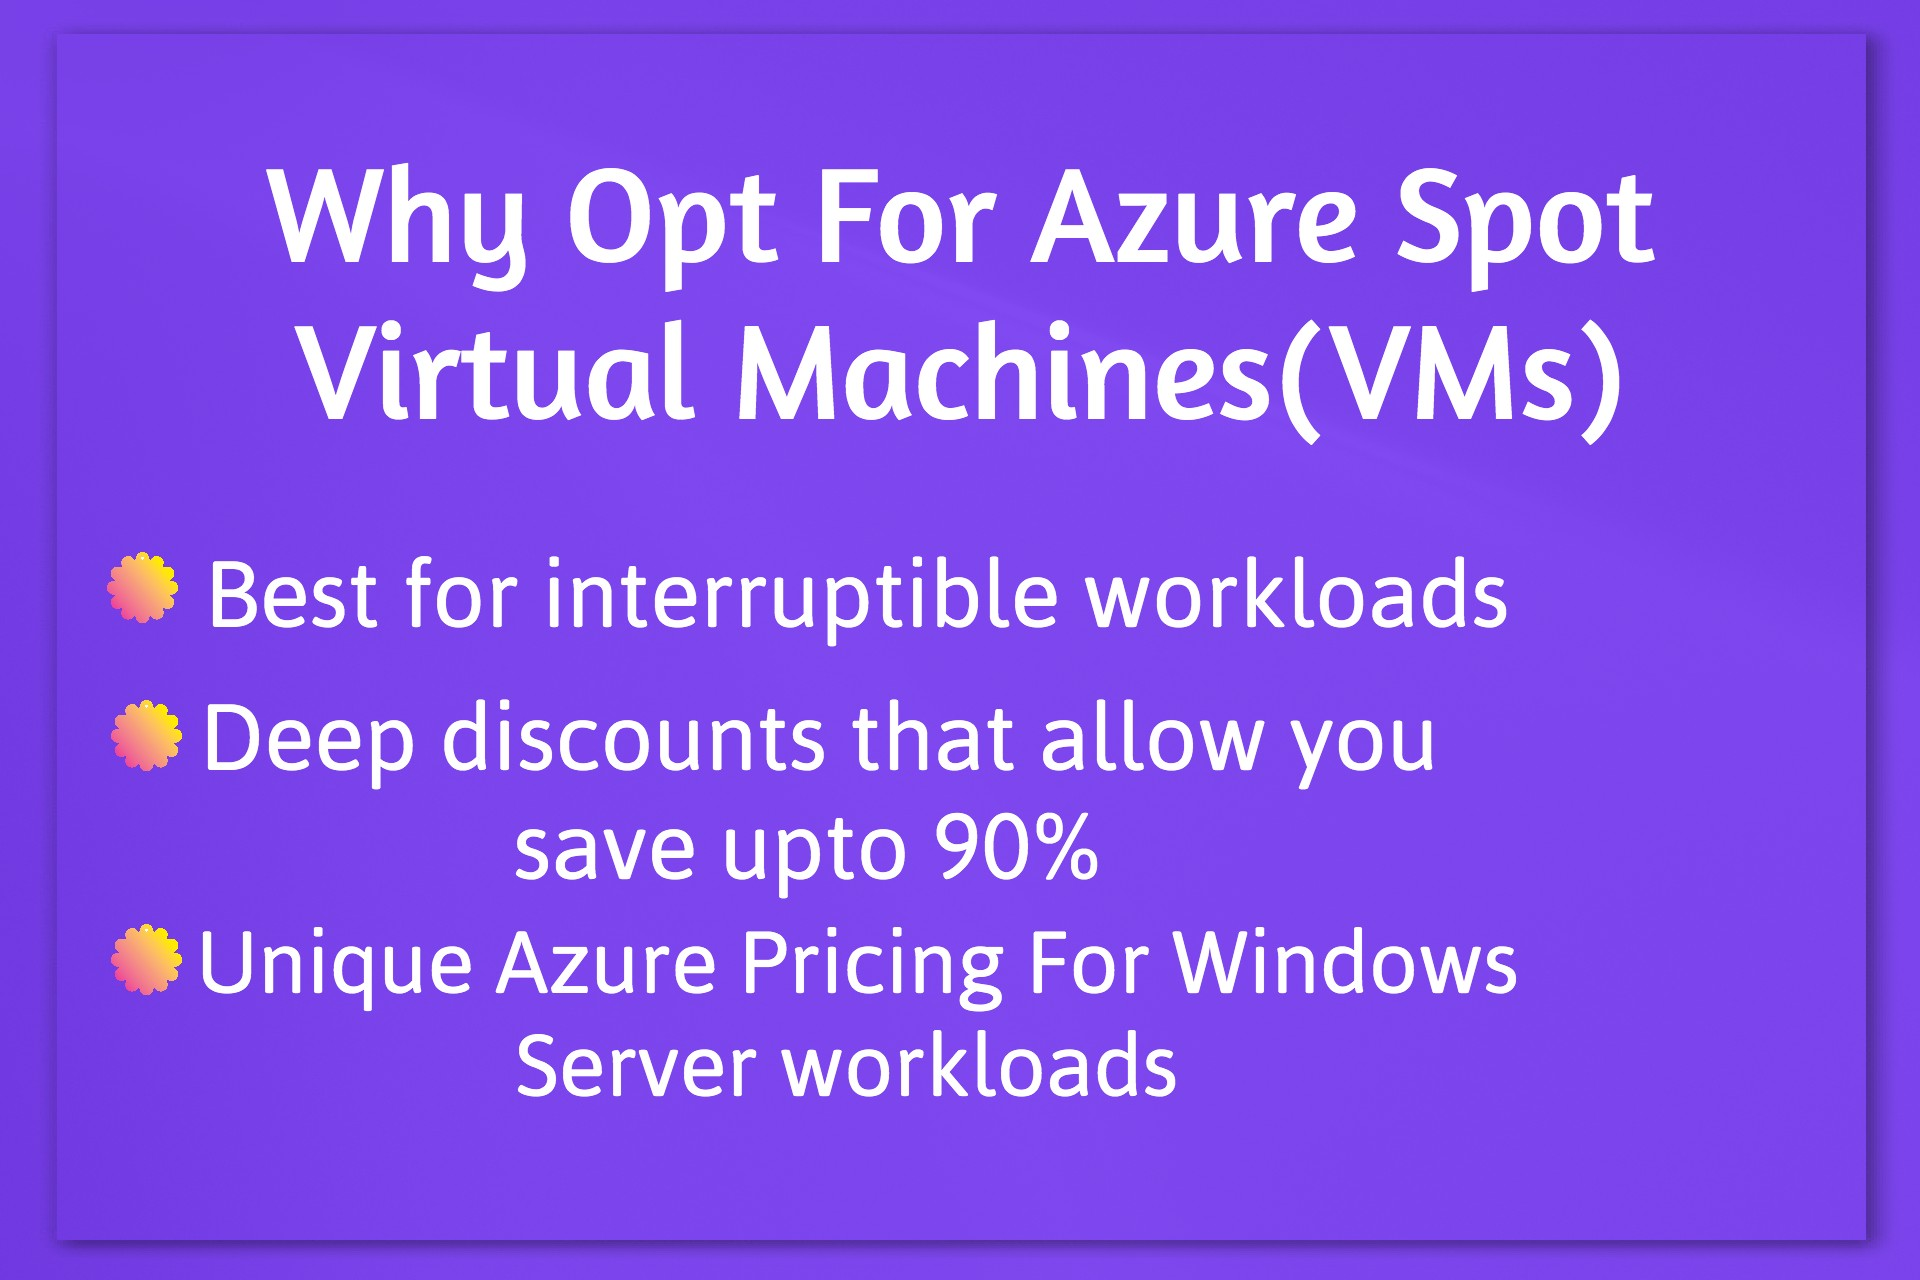 Get deep discounts using Azure Spot Virtual Machines(VMs) for all your interruptible workloads running in the Cloud…